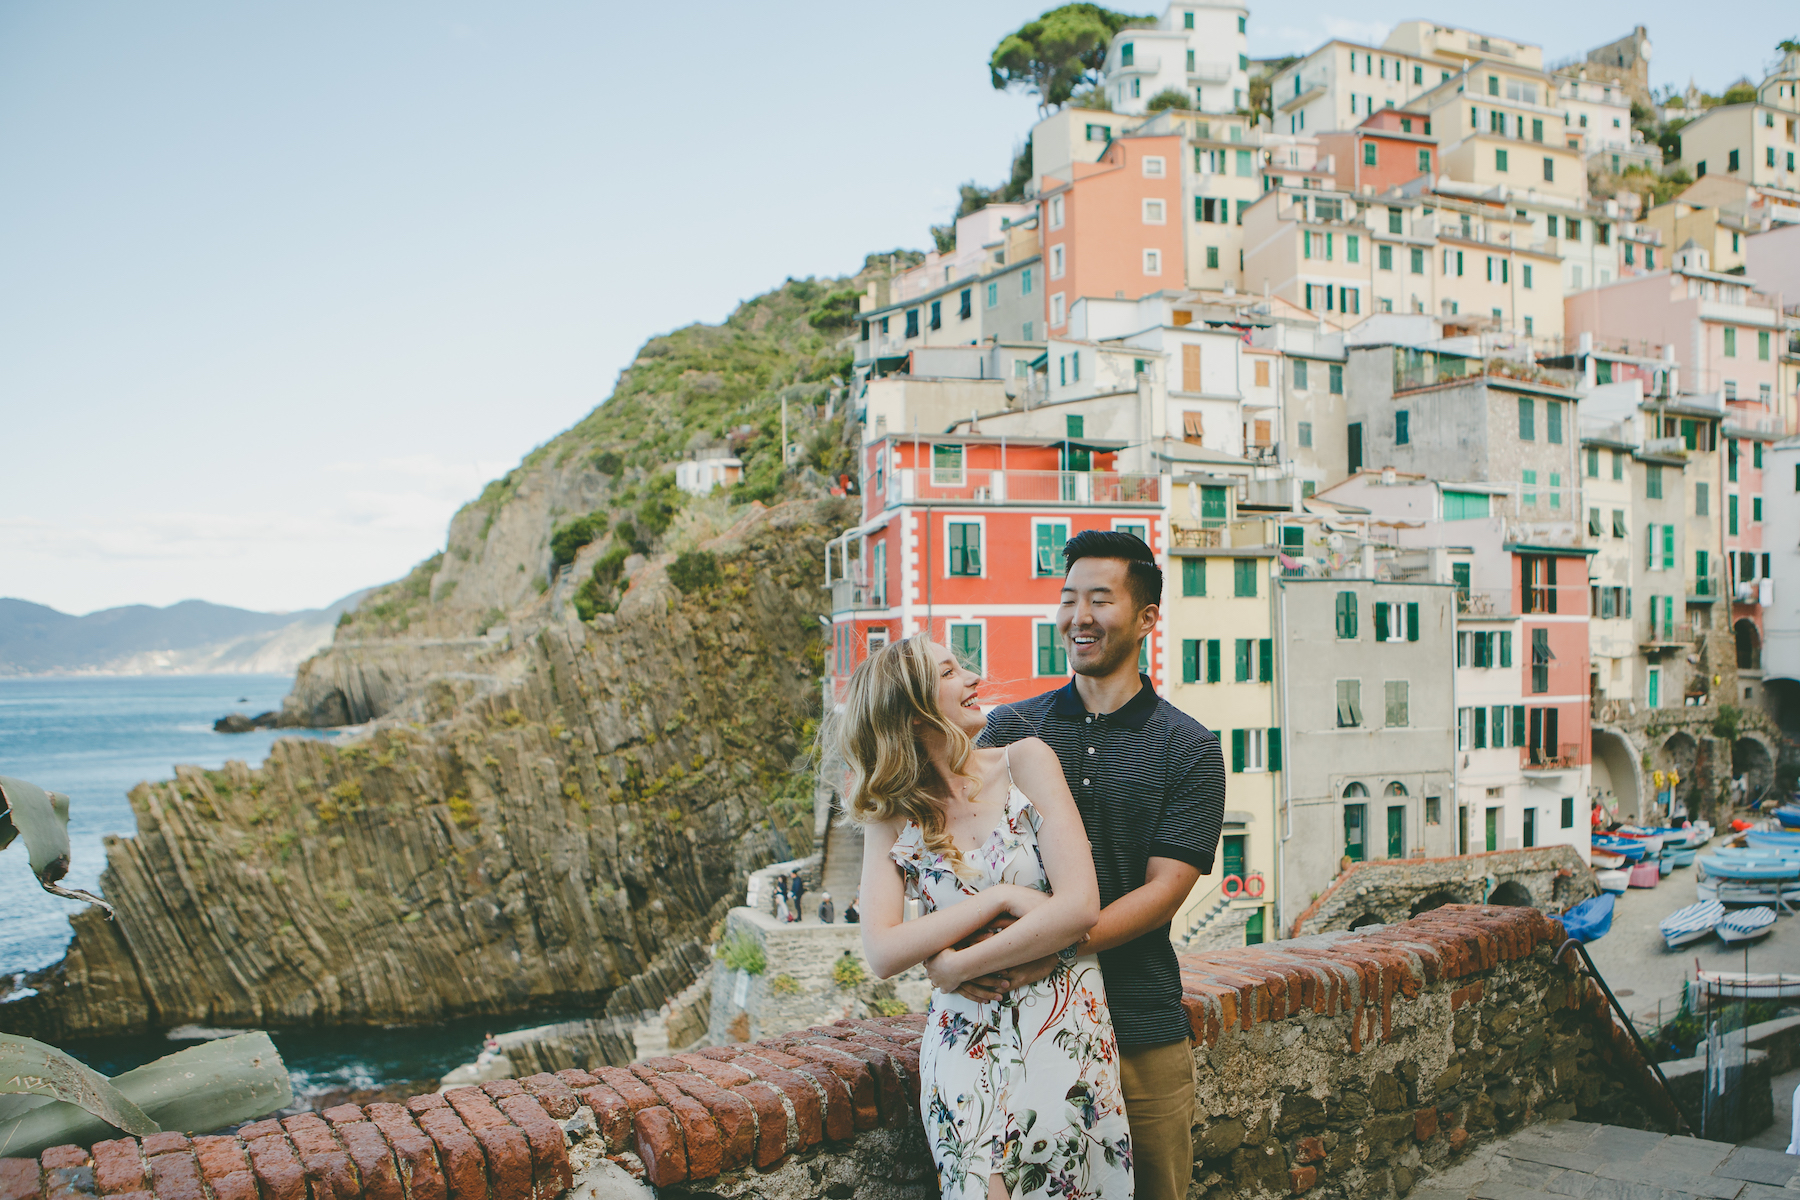 Top 10 Airbnb Rentals For Your Honeymoon In Italy | Flytographer